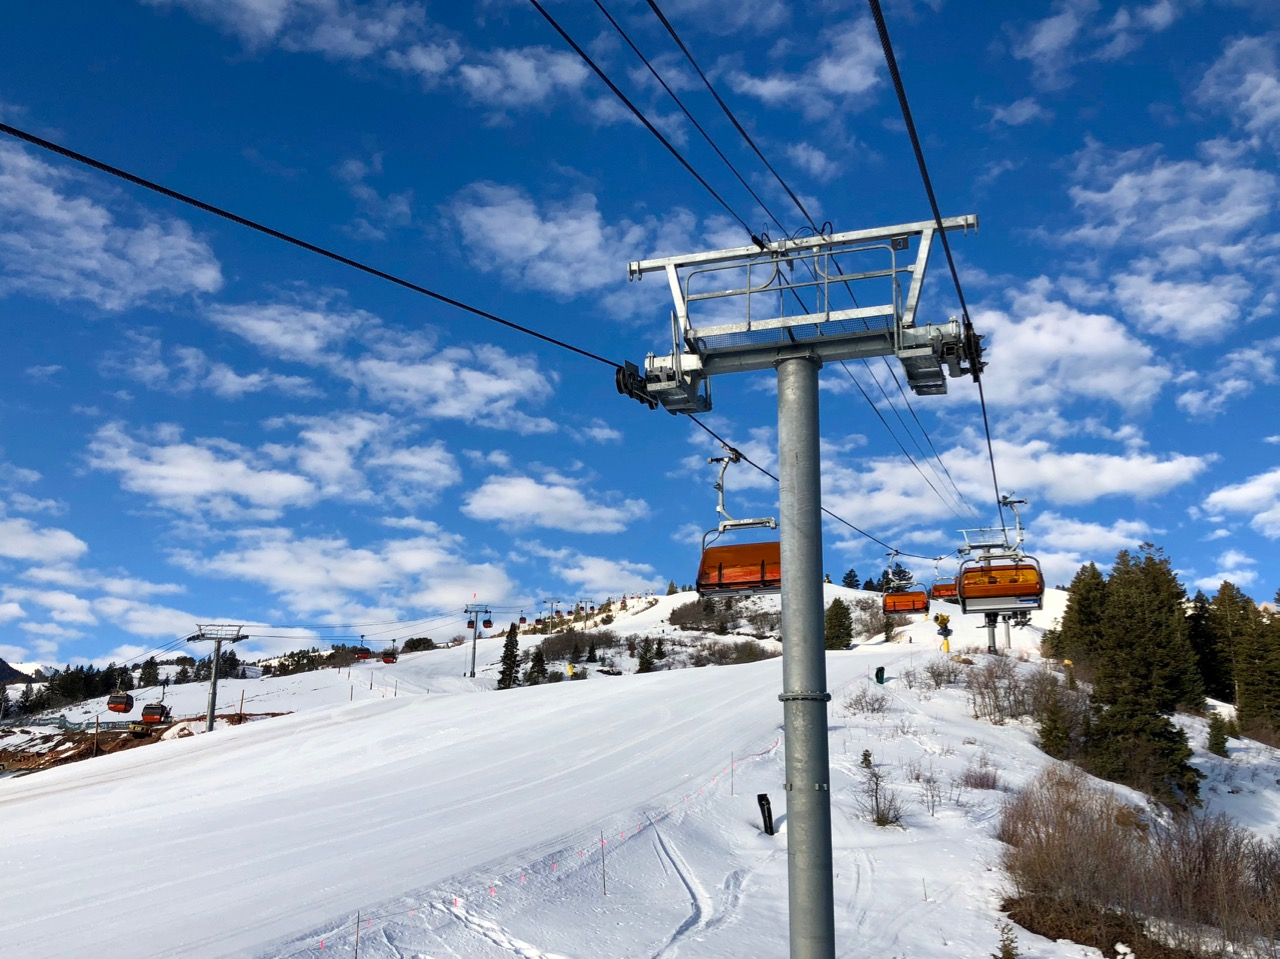 Skiing Out West at Park City